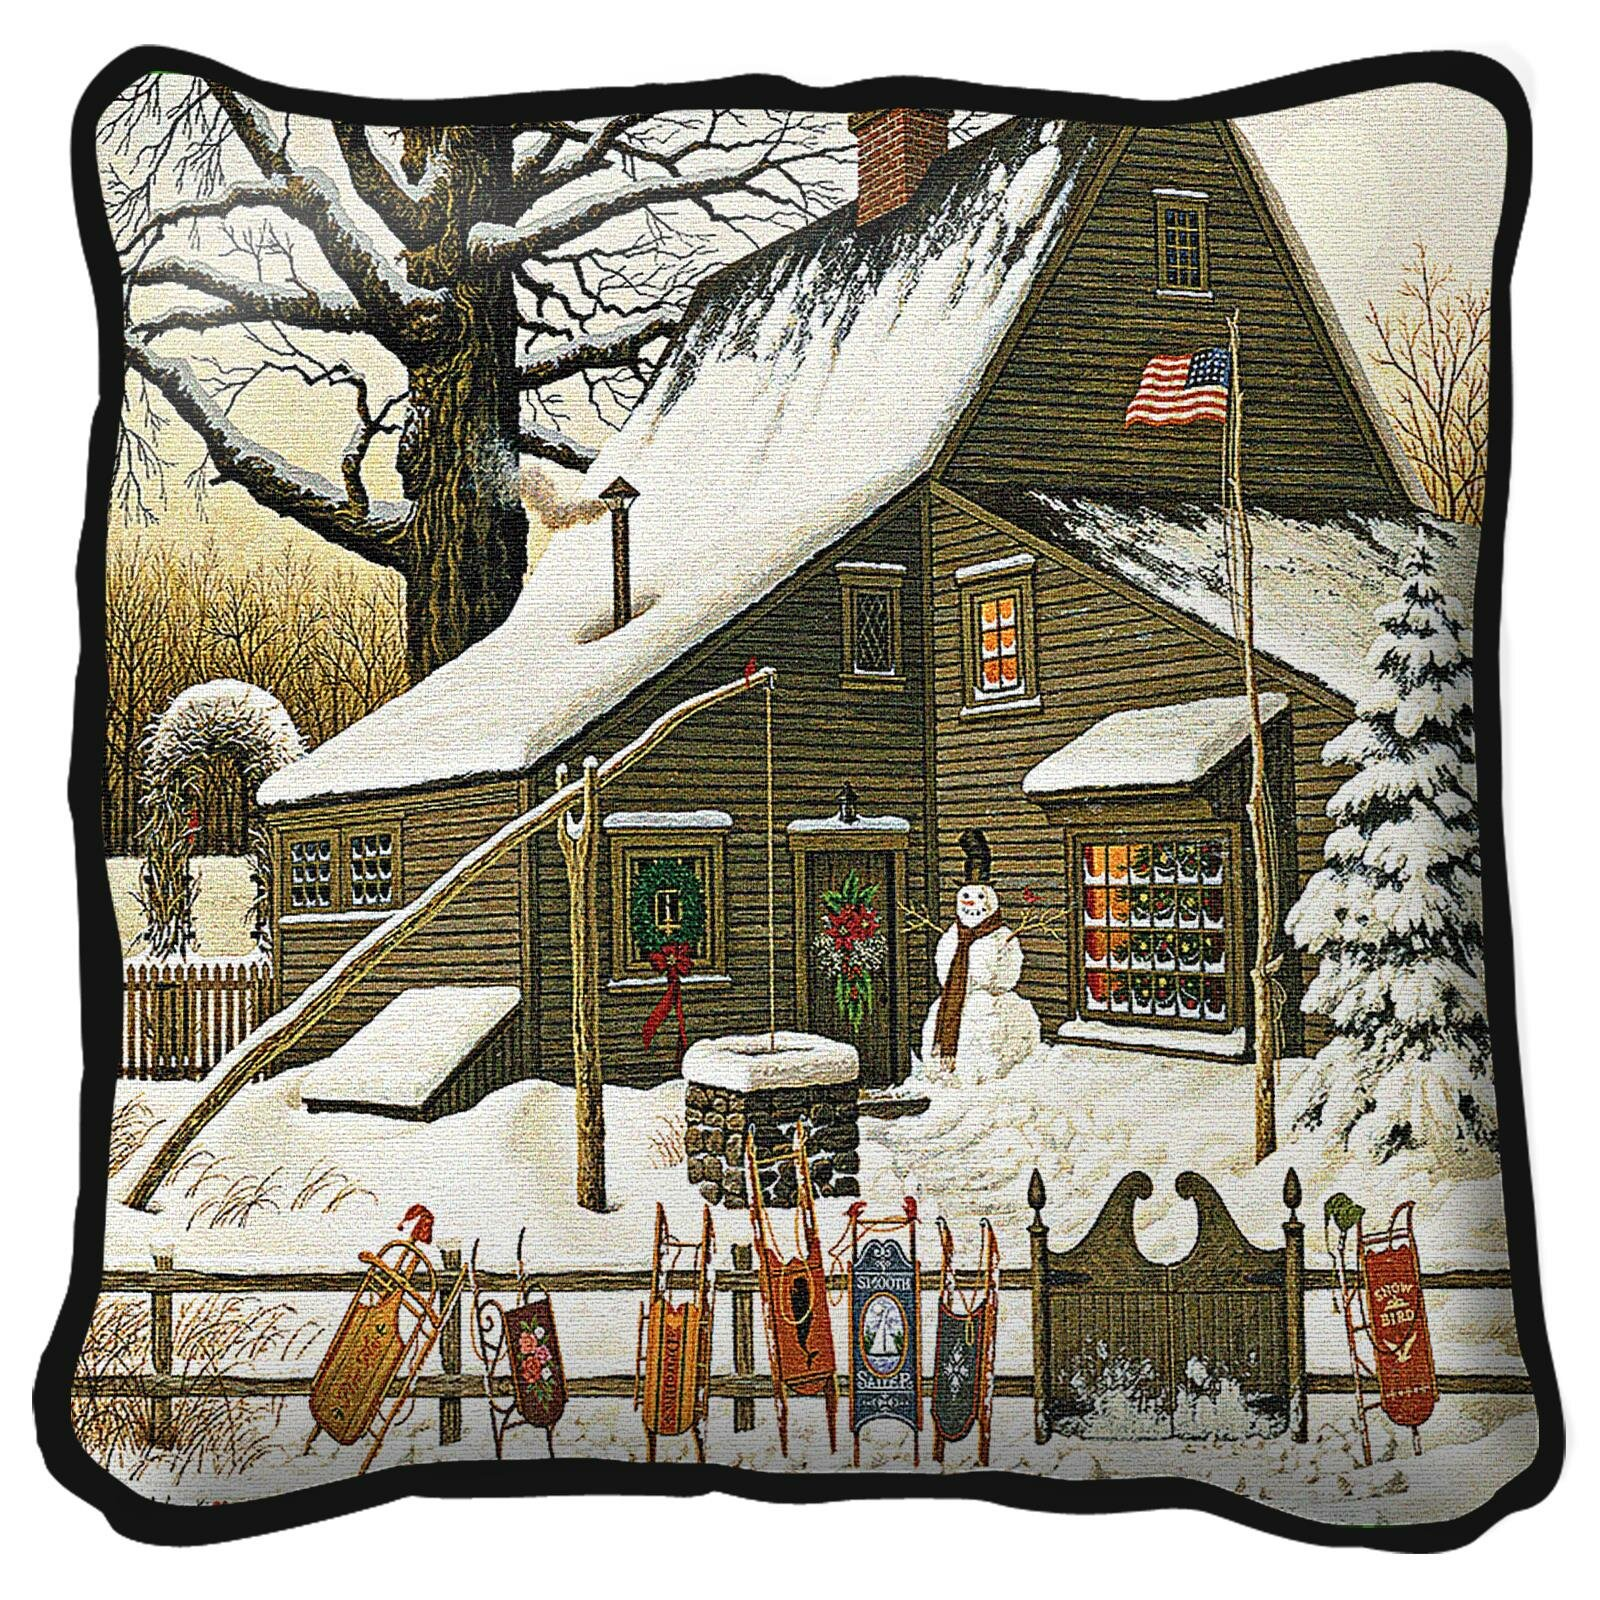 August Grove Islas Cocoa Break At The Copperfields Cotton 17 Throw Pillow Cover Wayfair